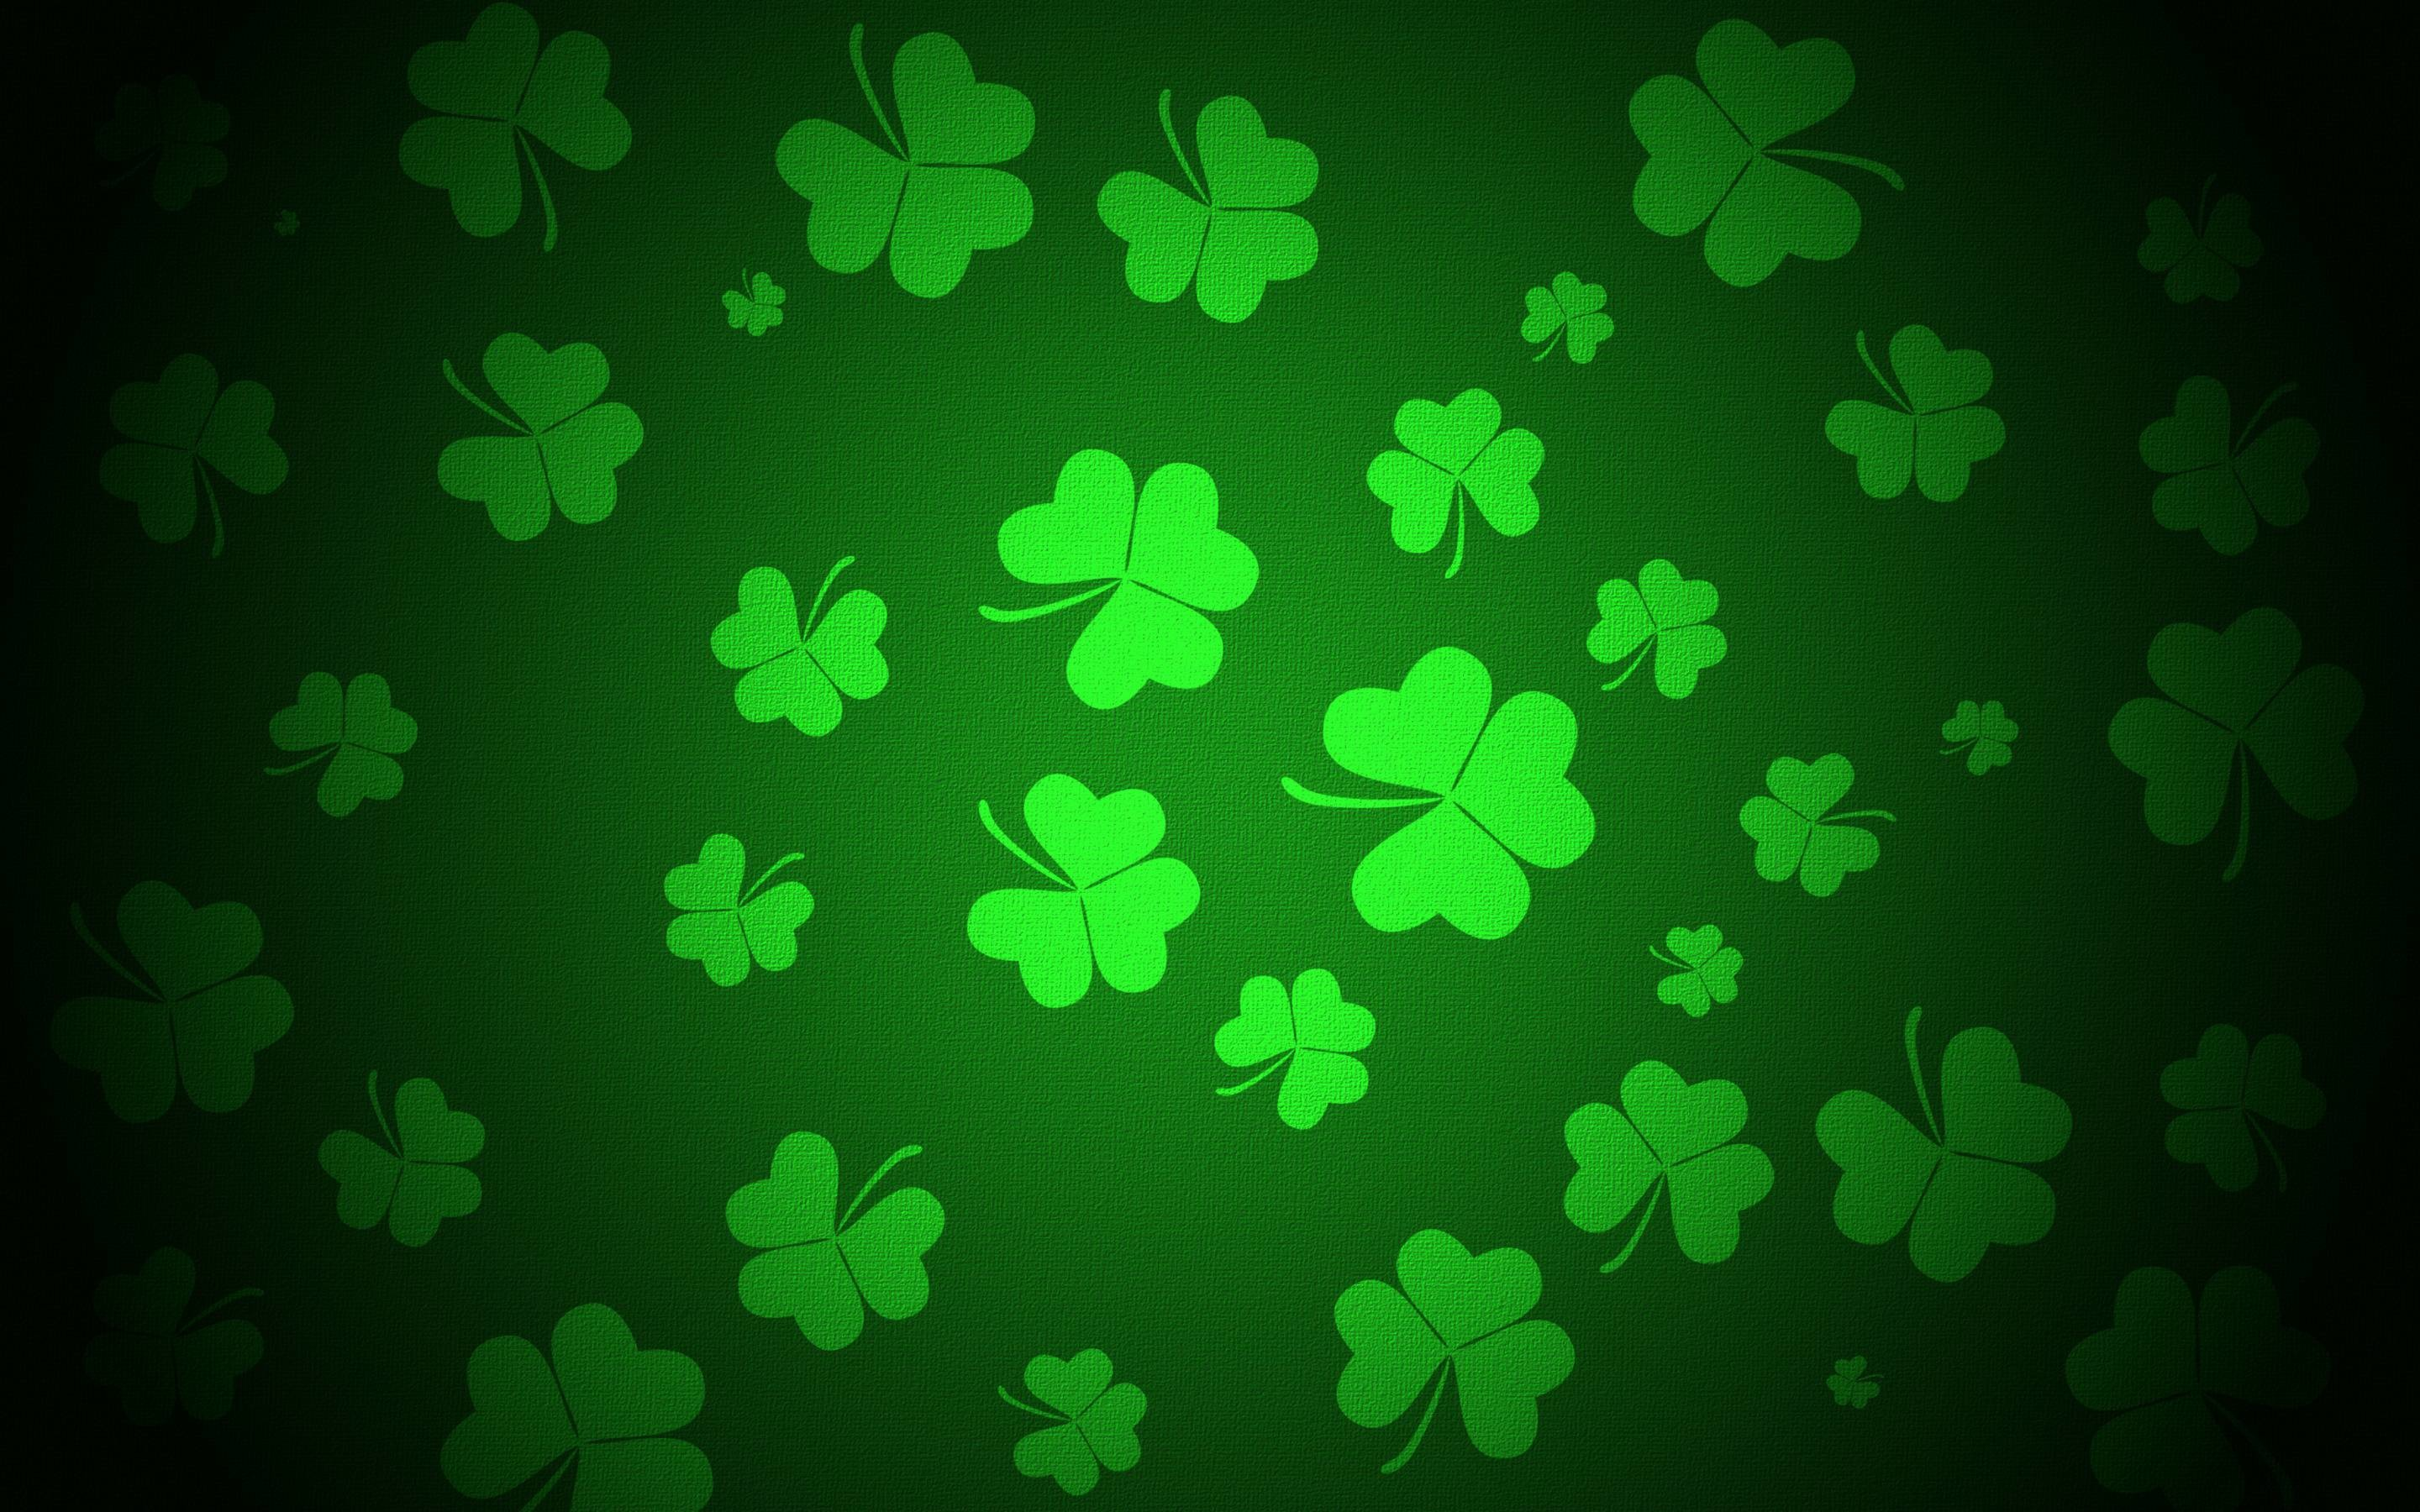 Four Leaf Clover Wallpapers 51 pictures 2880x1800